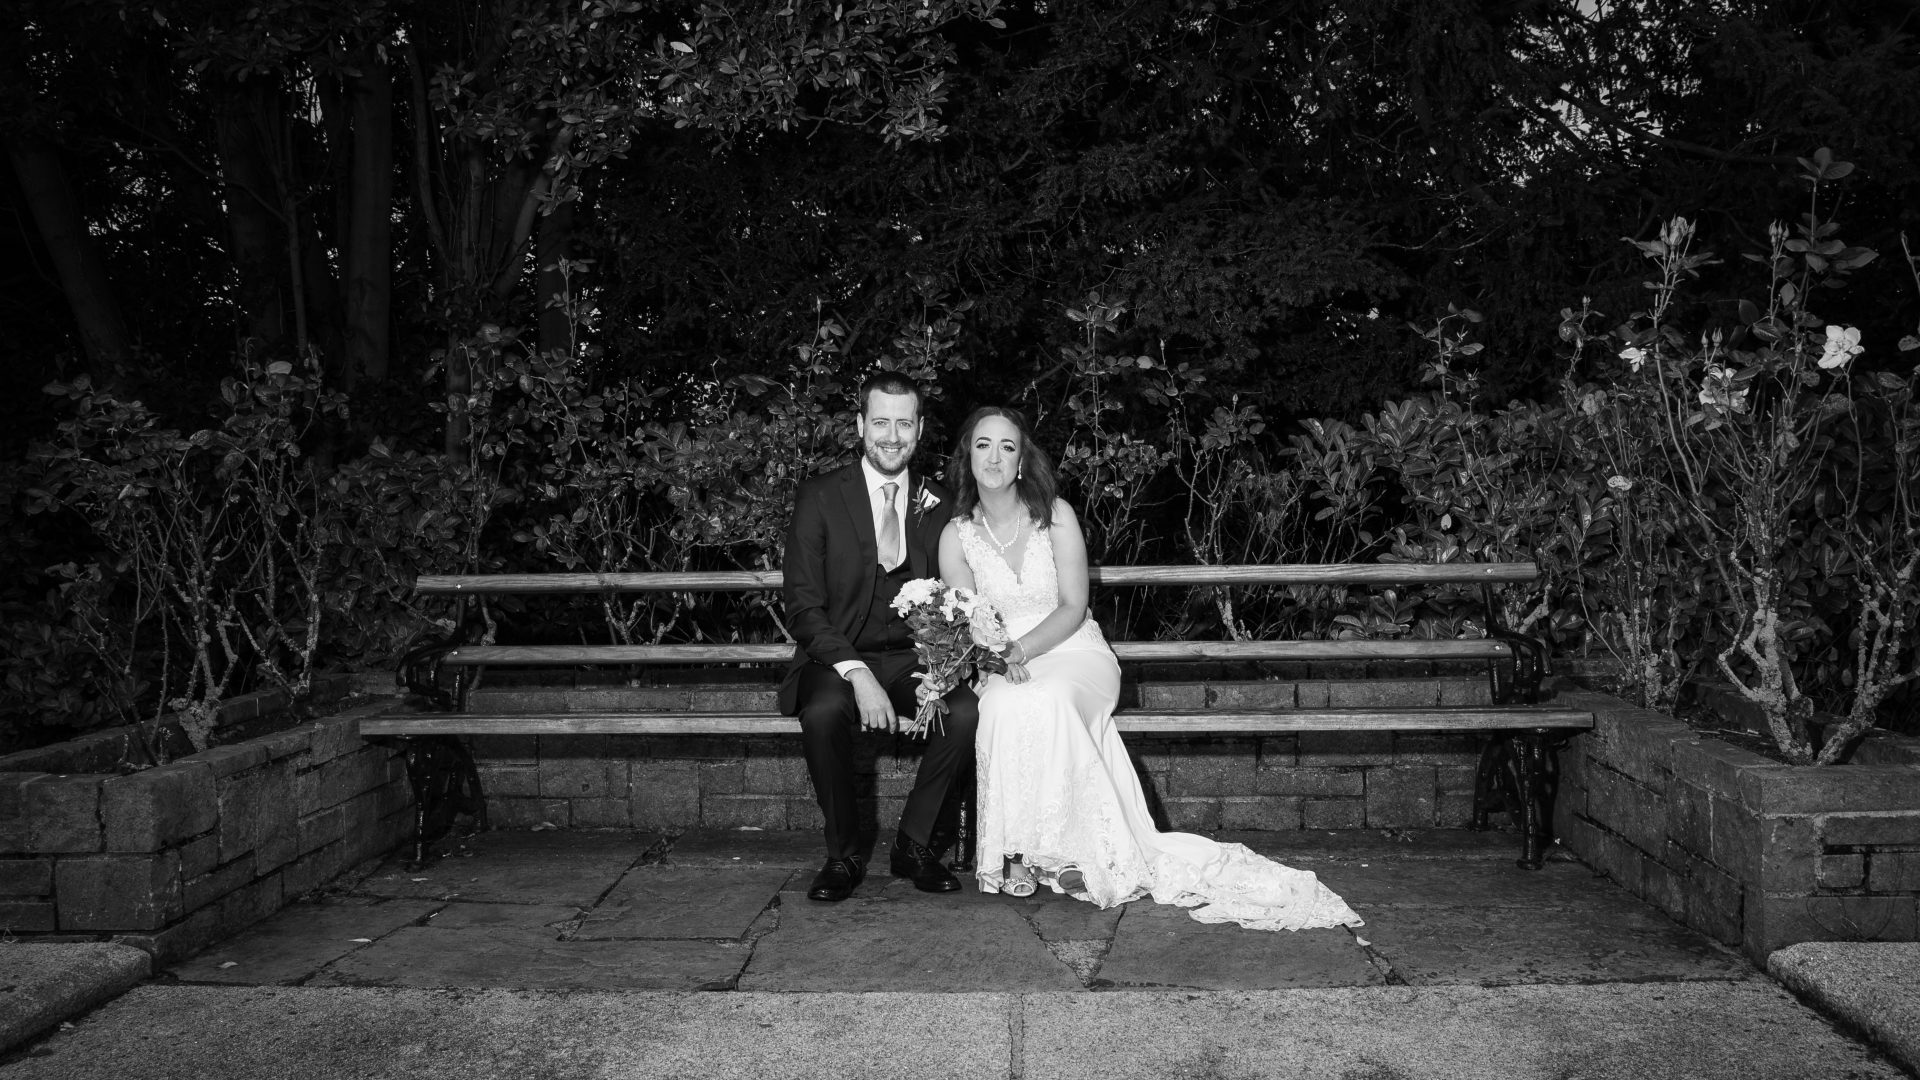 Kilkenny Castle Wedding